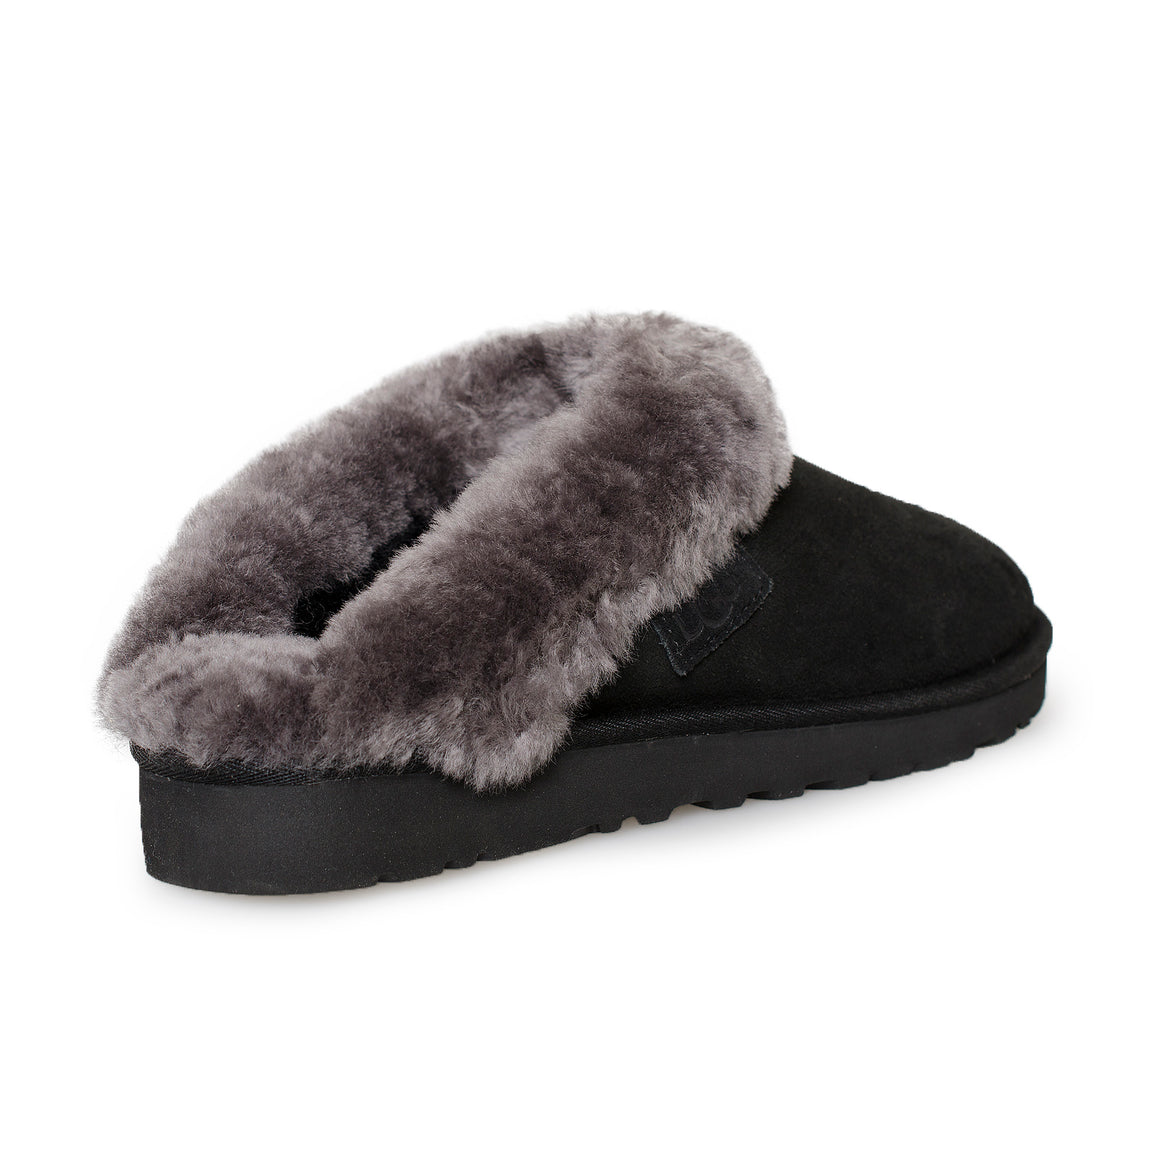 UGG Cluggette Black Slippers - Women's